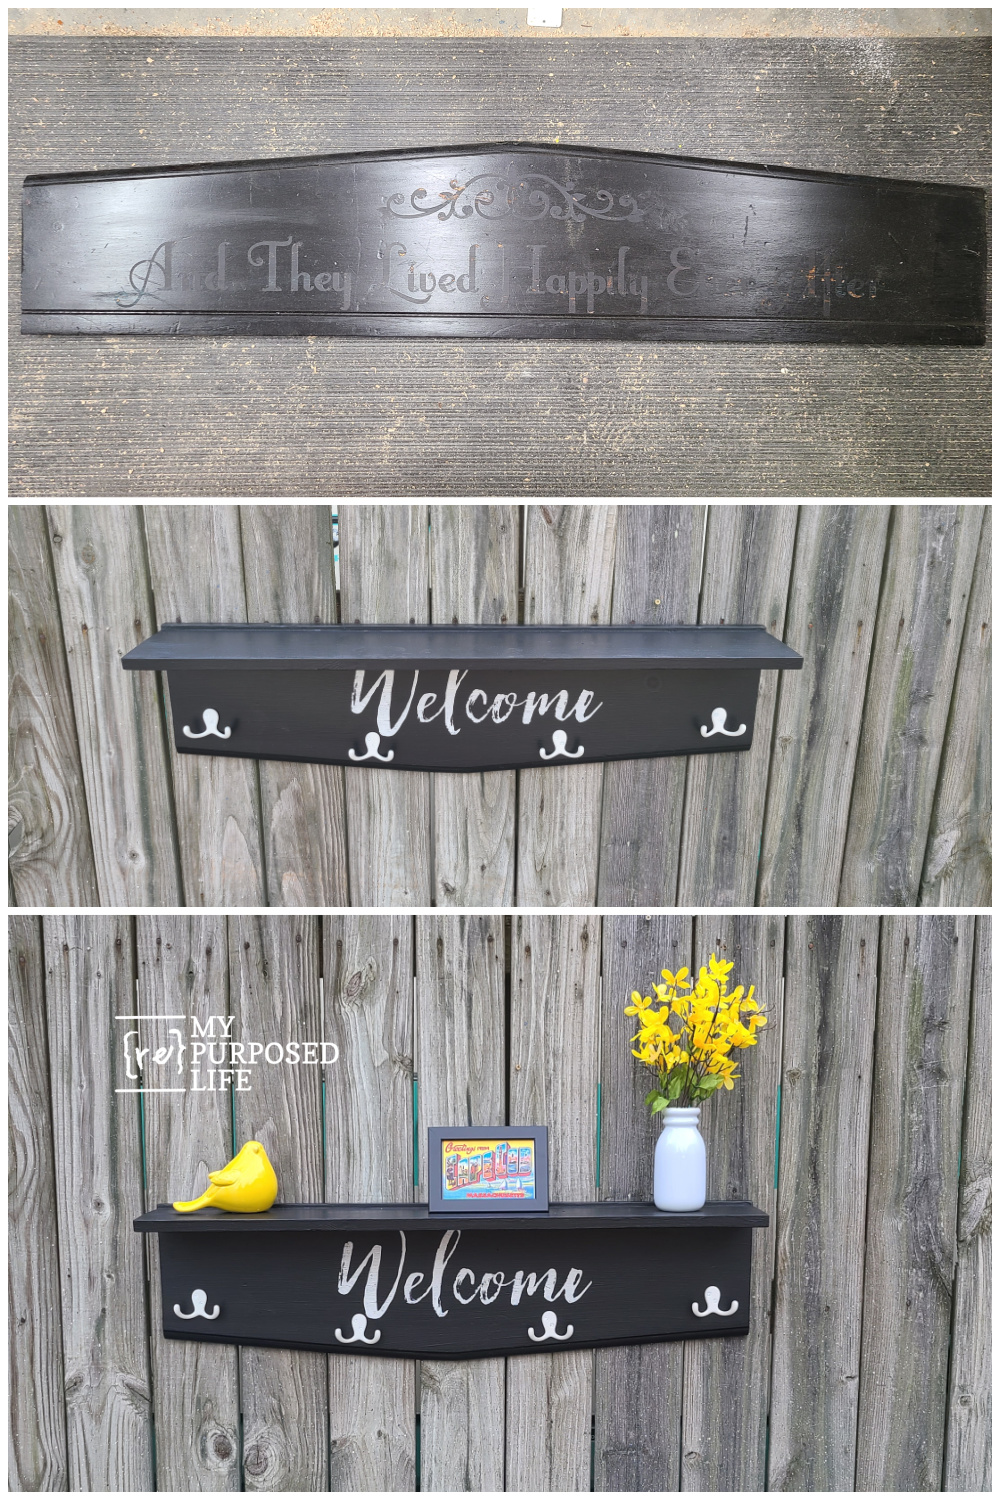 How to make a headboard coat rack shelf using old and new bits and pieces. Step by step tutorial to make this project in an afternoon. #MyRepurposedLife #repurposed #furniture #headboard #hook #shelf #coatrack via @repurposedlife